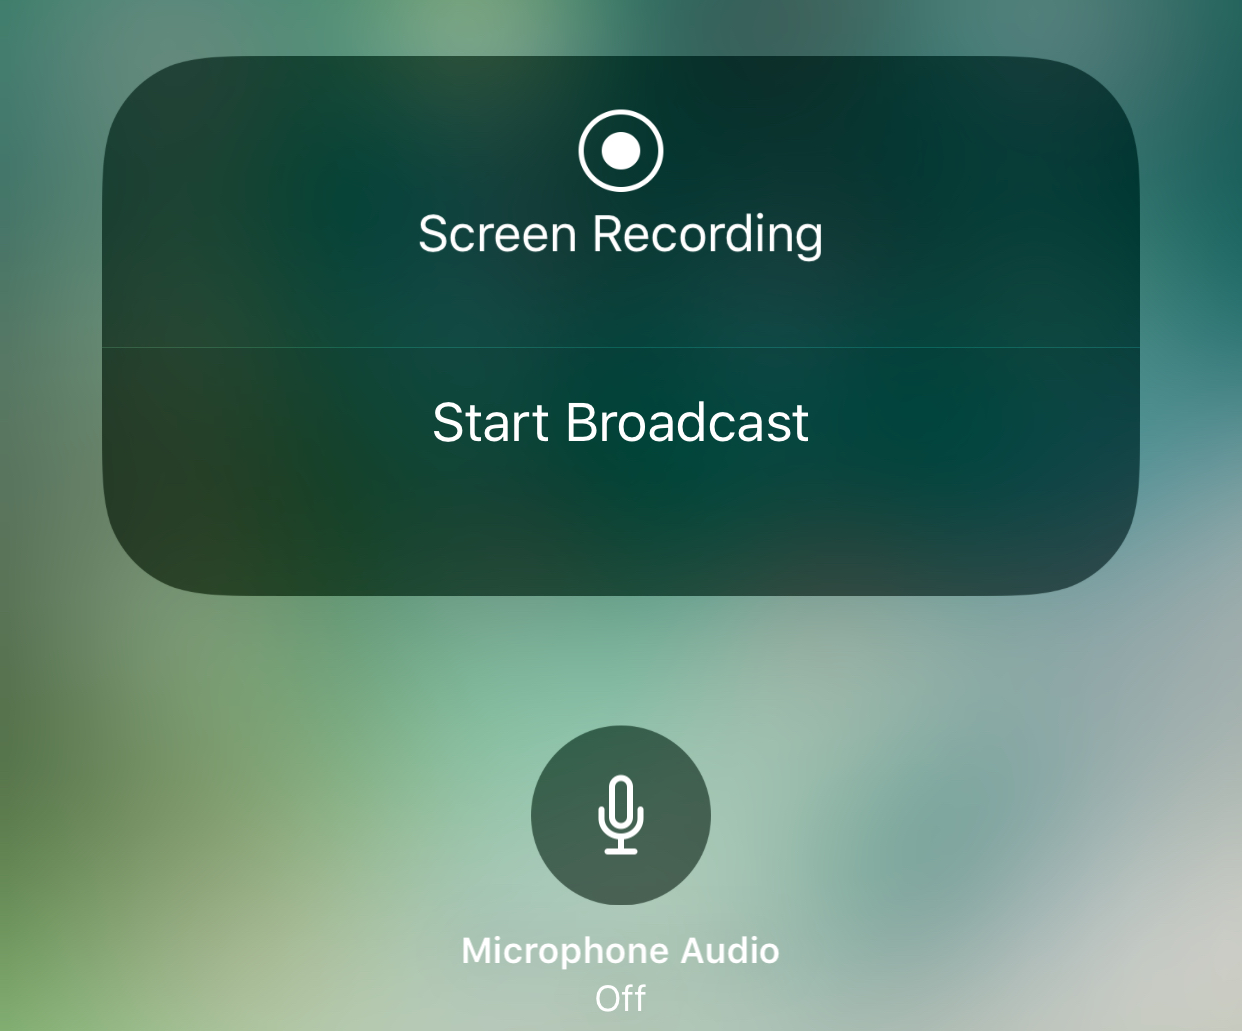 iOS 11 Screen Broadcast feature